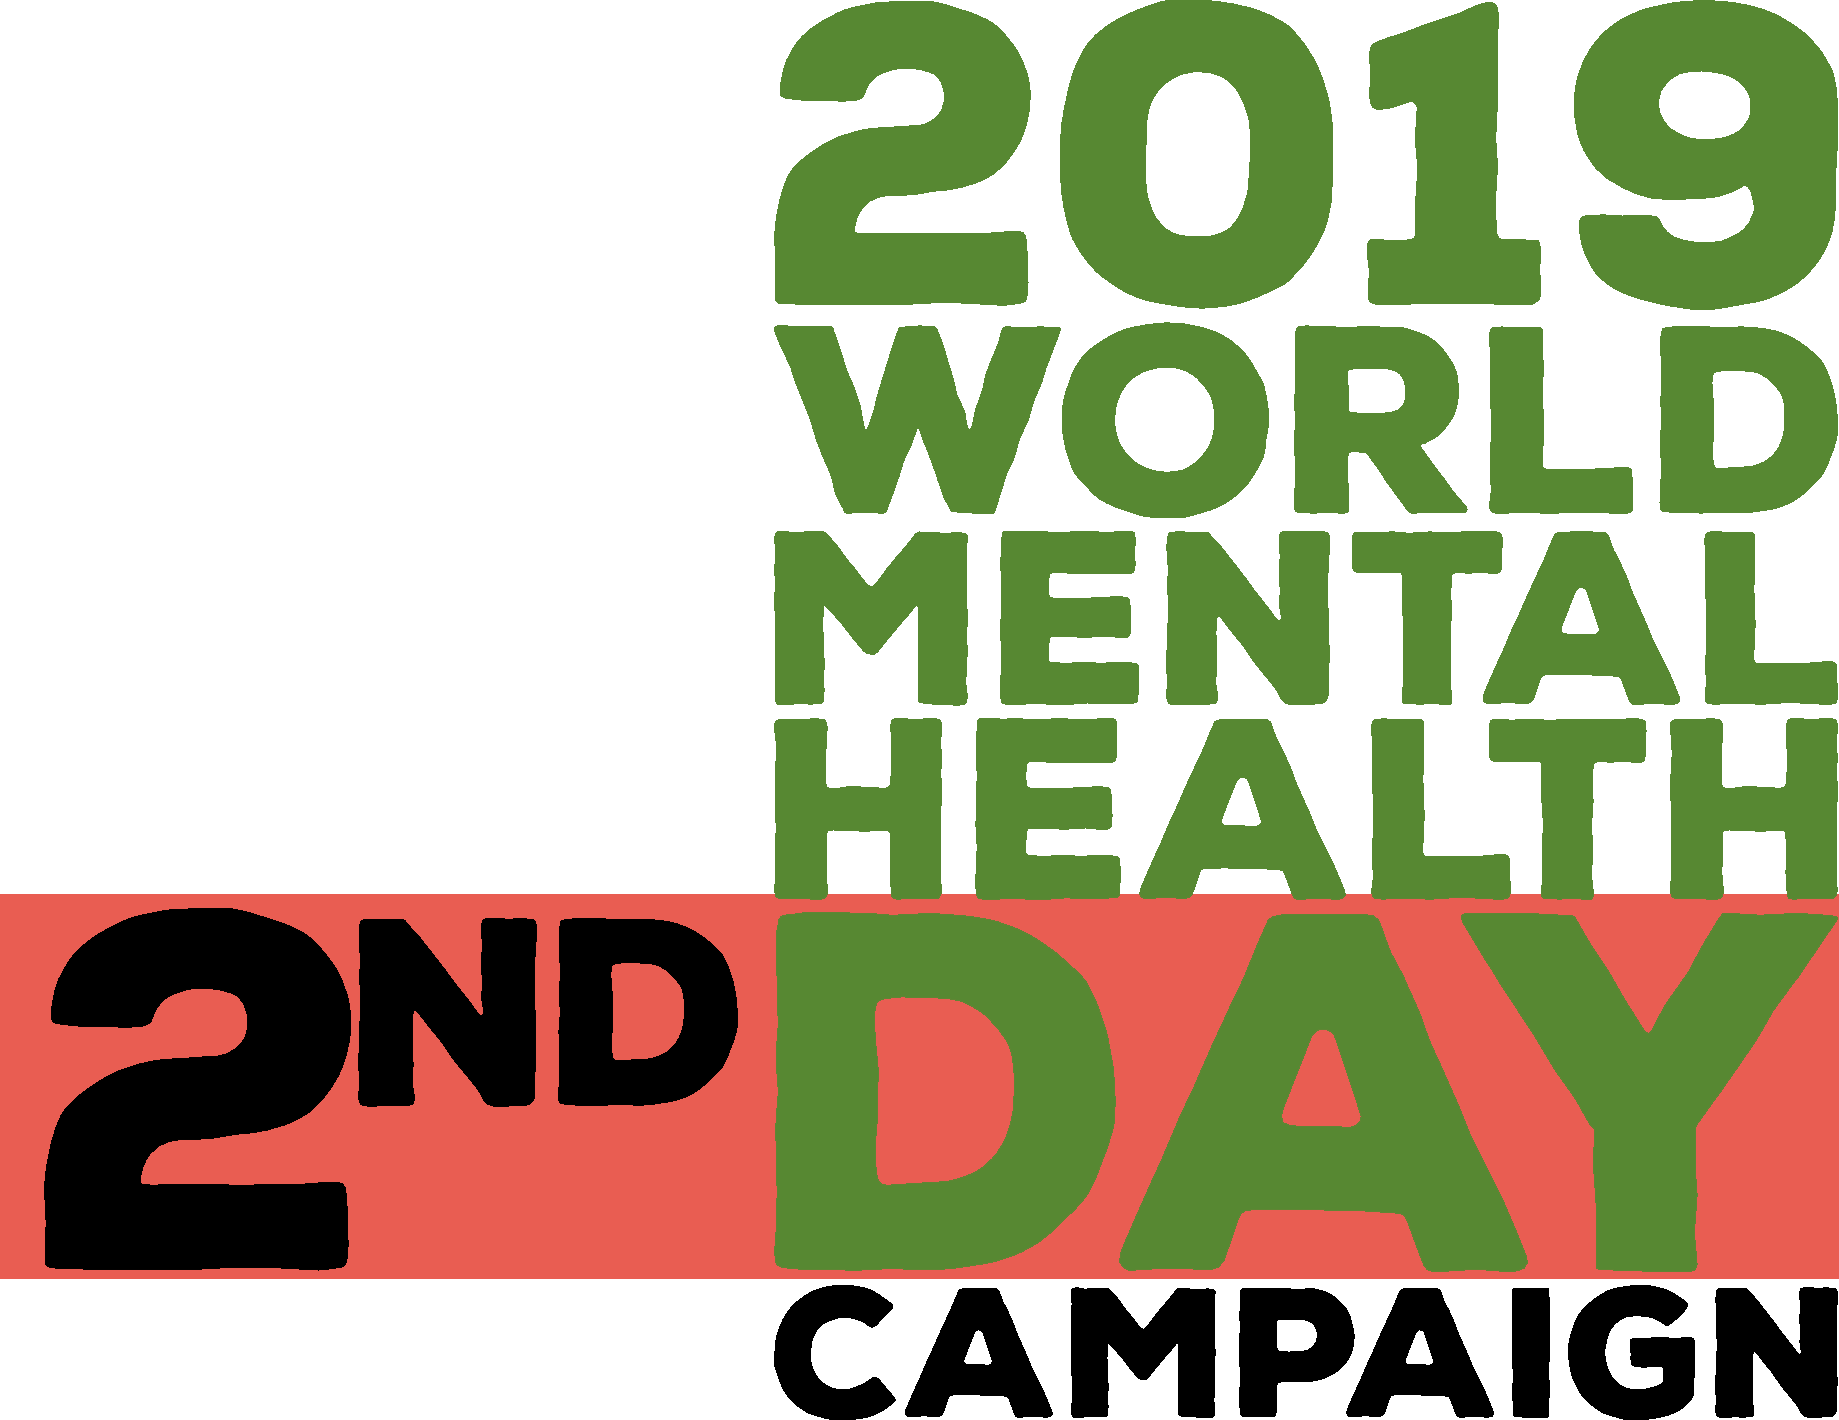 2019 world mental health day campaign logo 2nd day